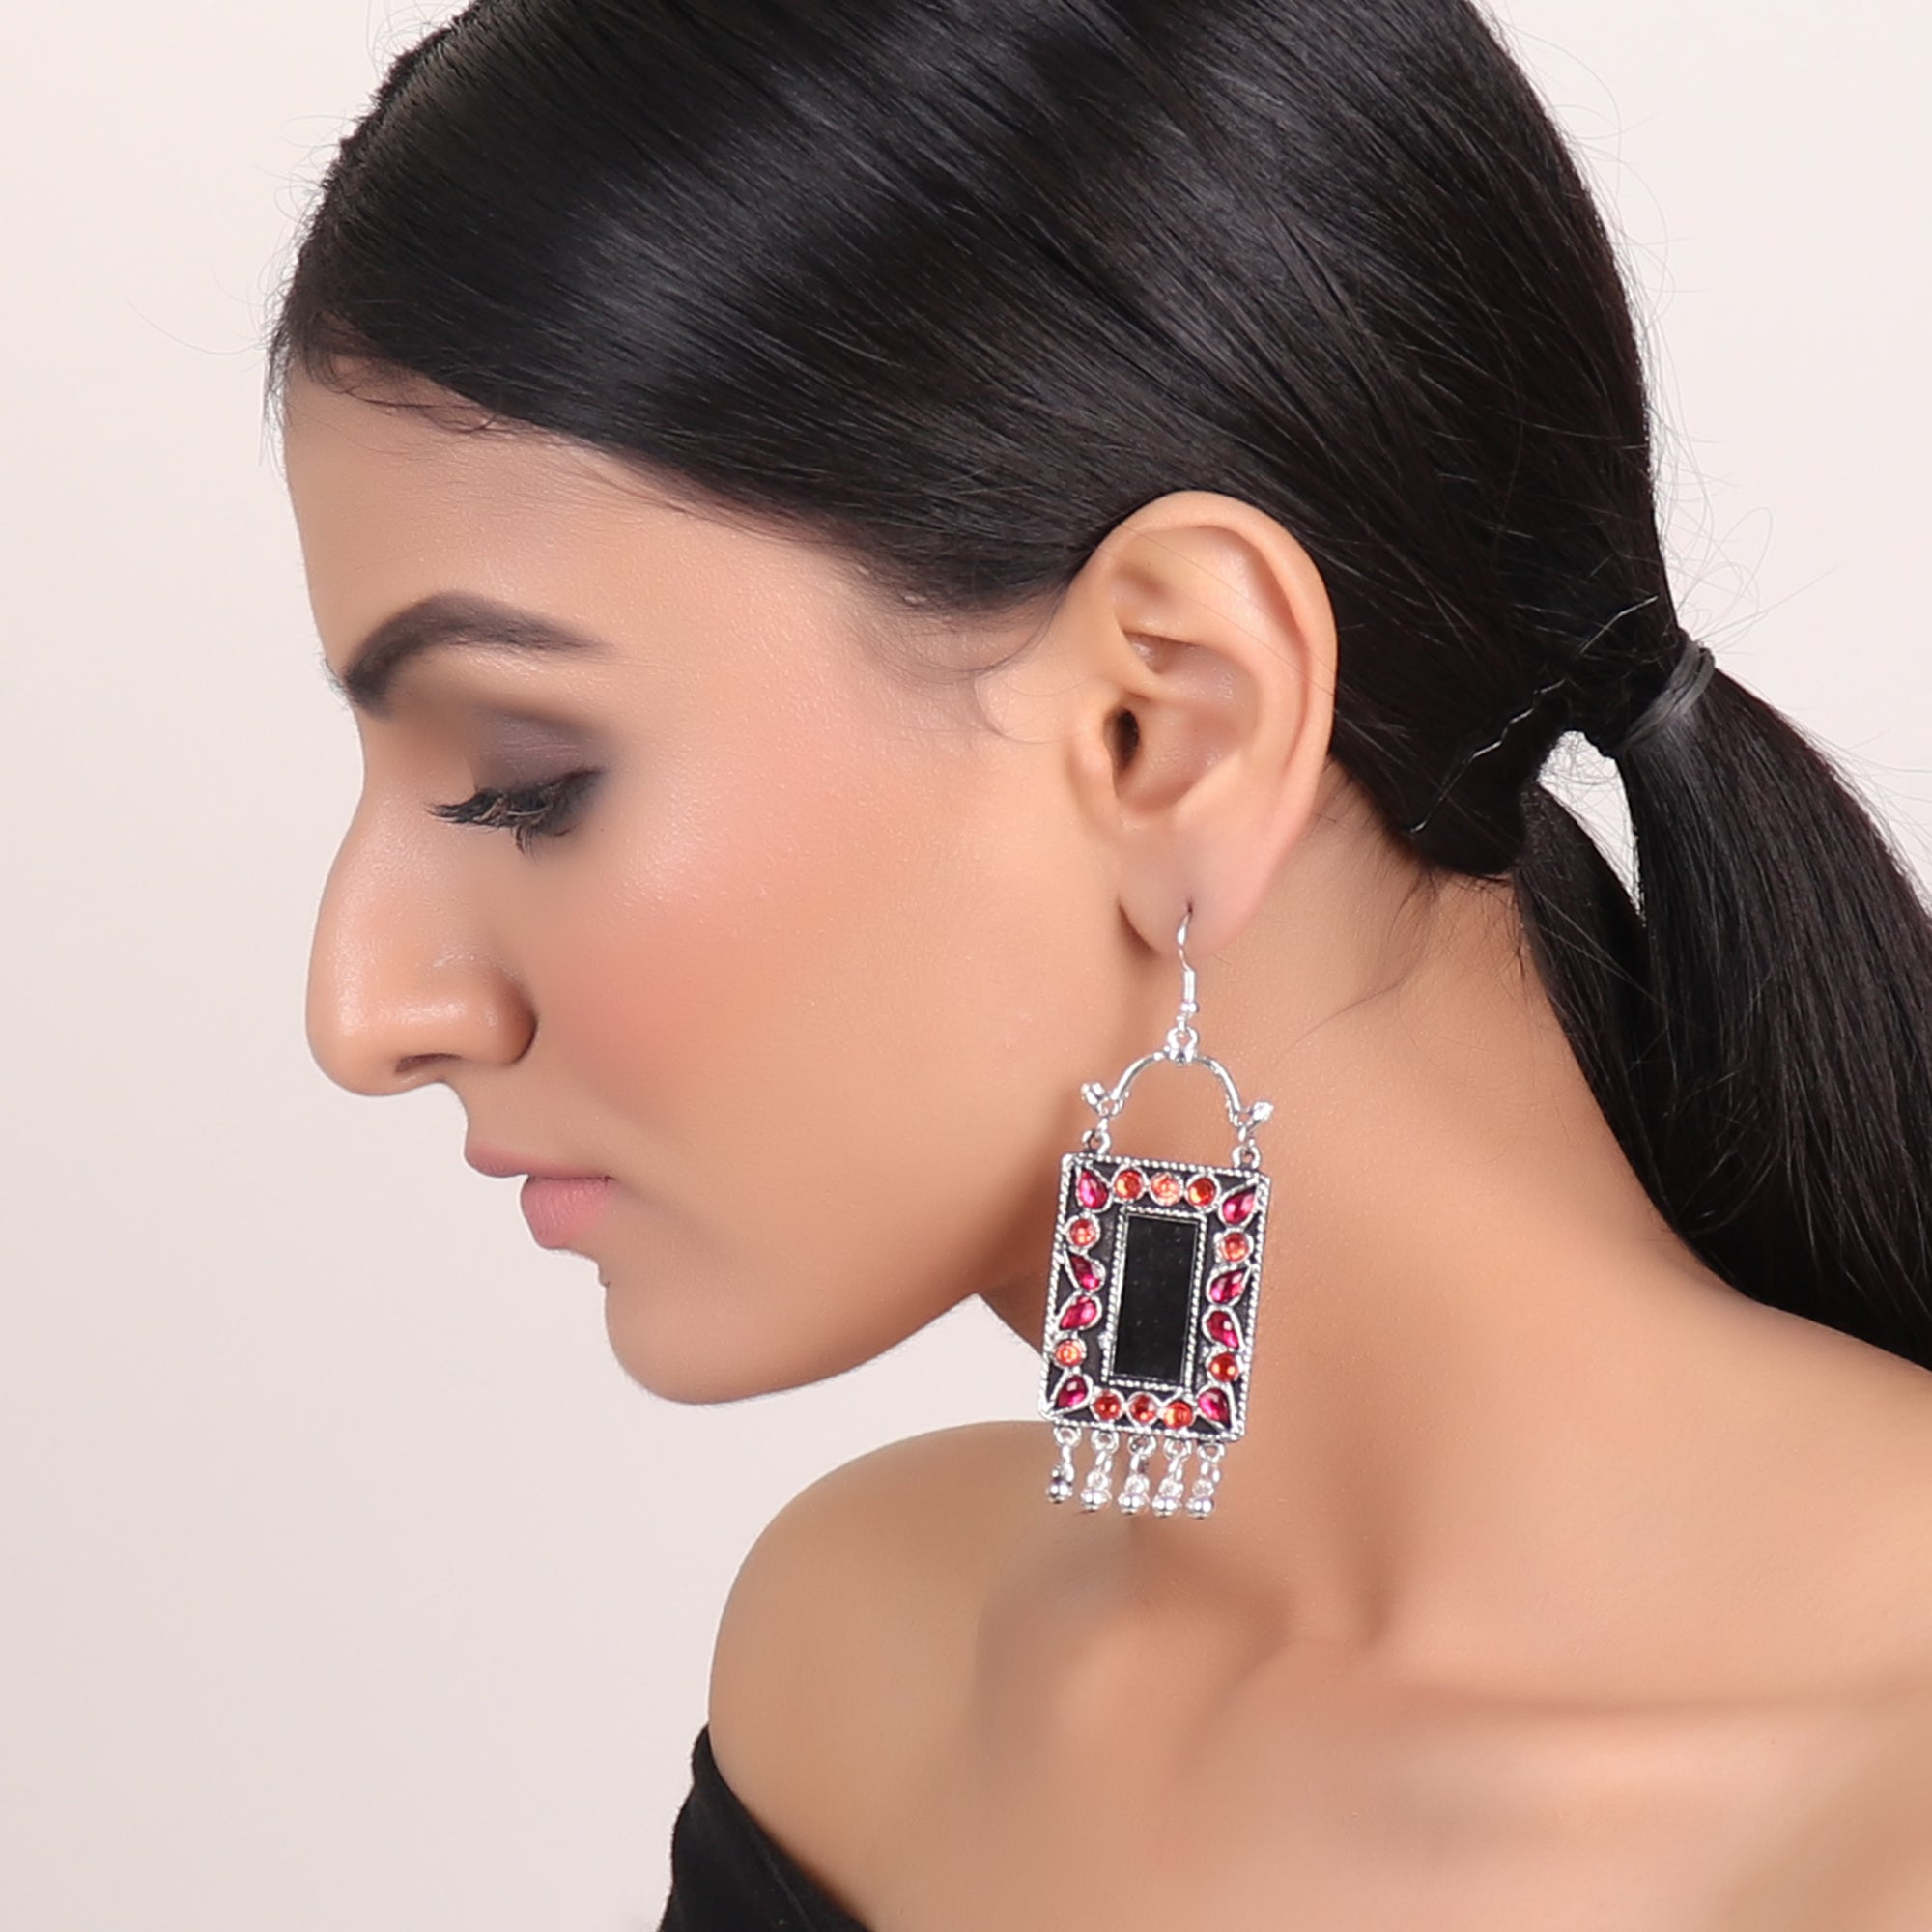 Earrings,Rectangle Mirror Earrings in Pink & Orange - Cippele Multi Store